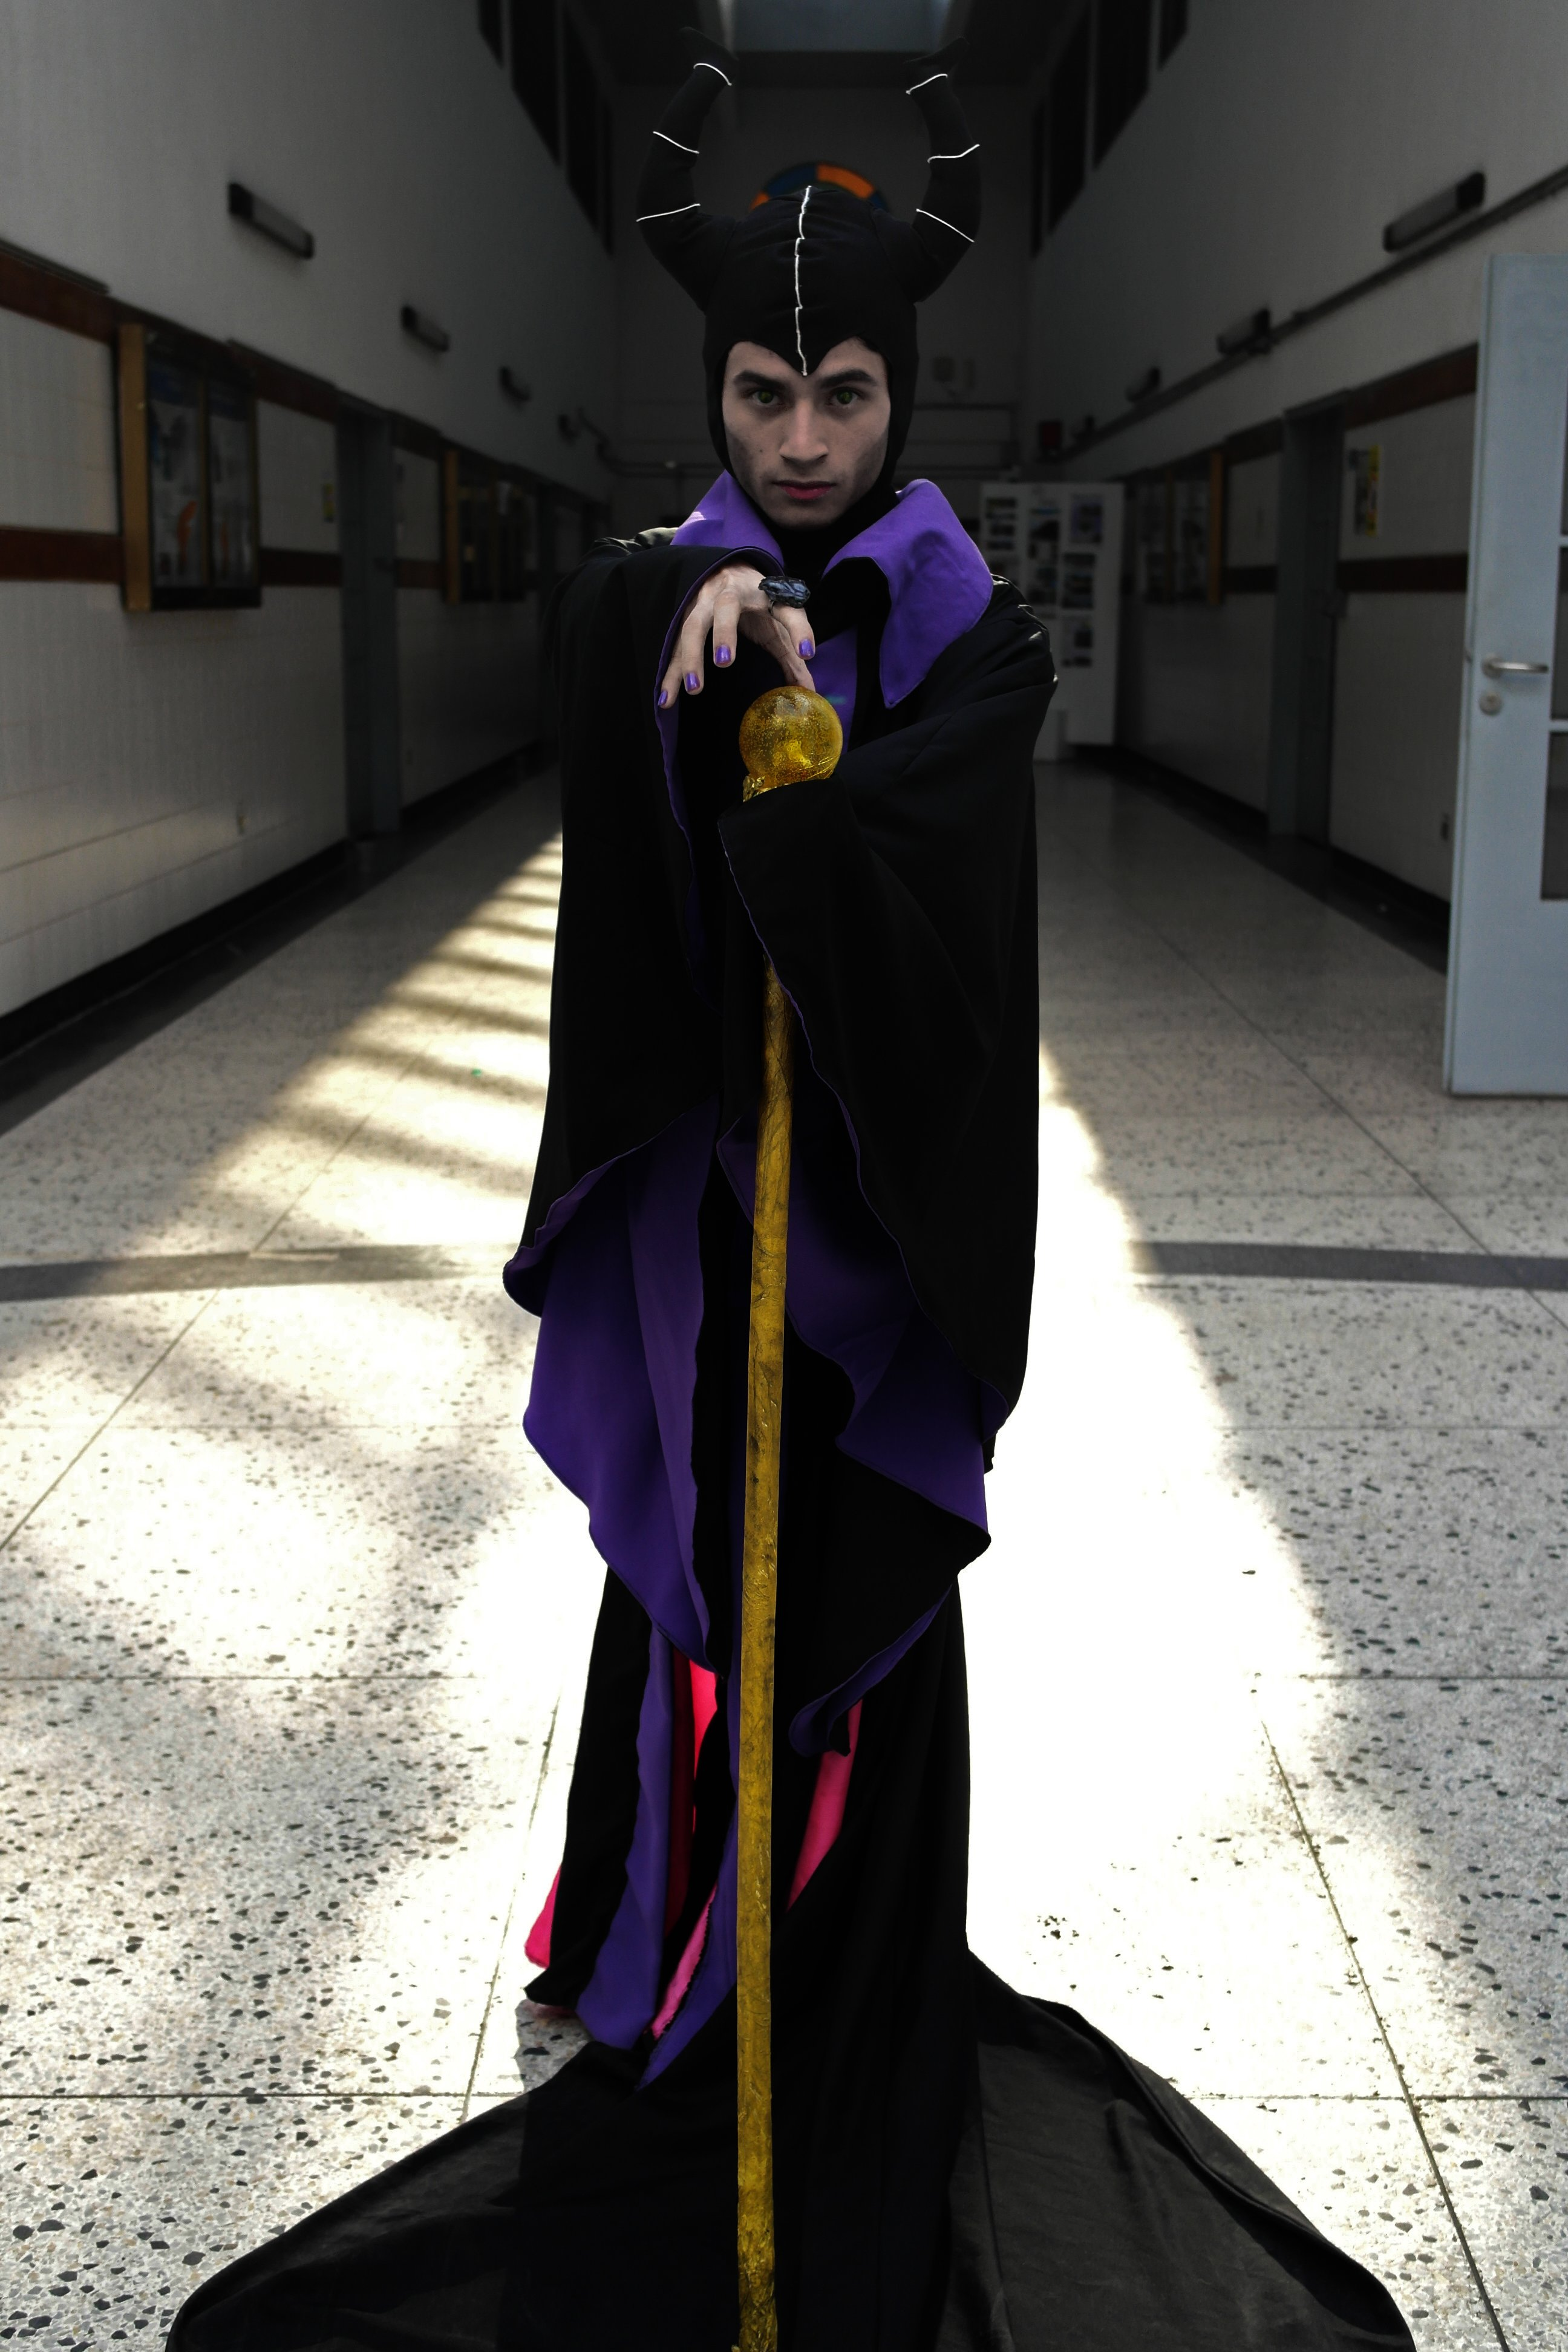 maleficent genderbend cosplay by - photo #11